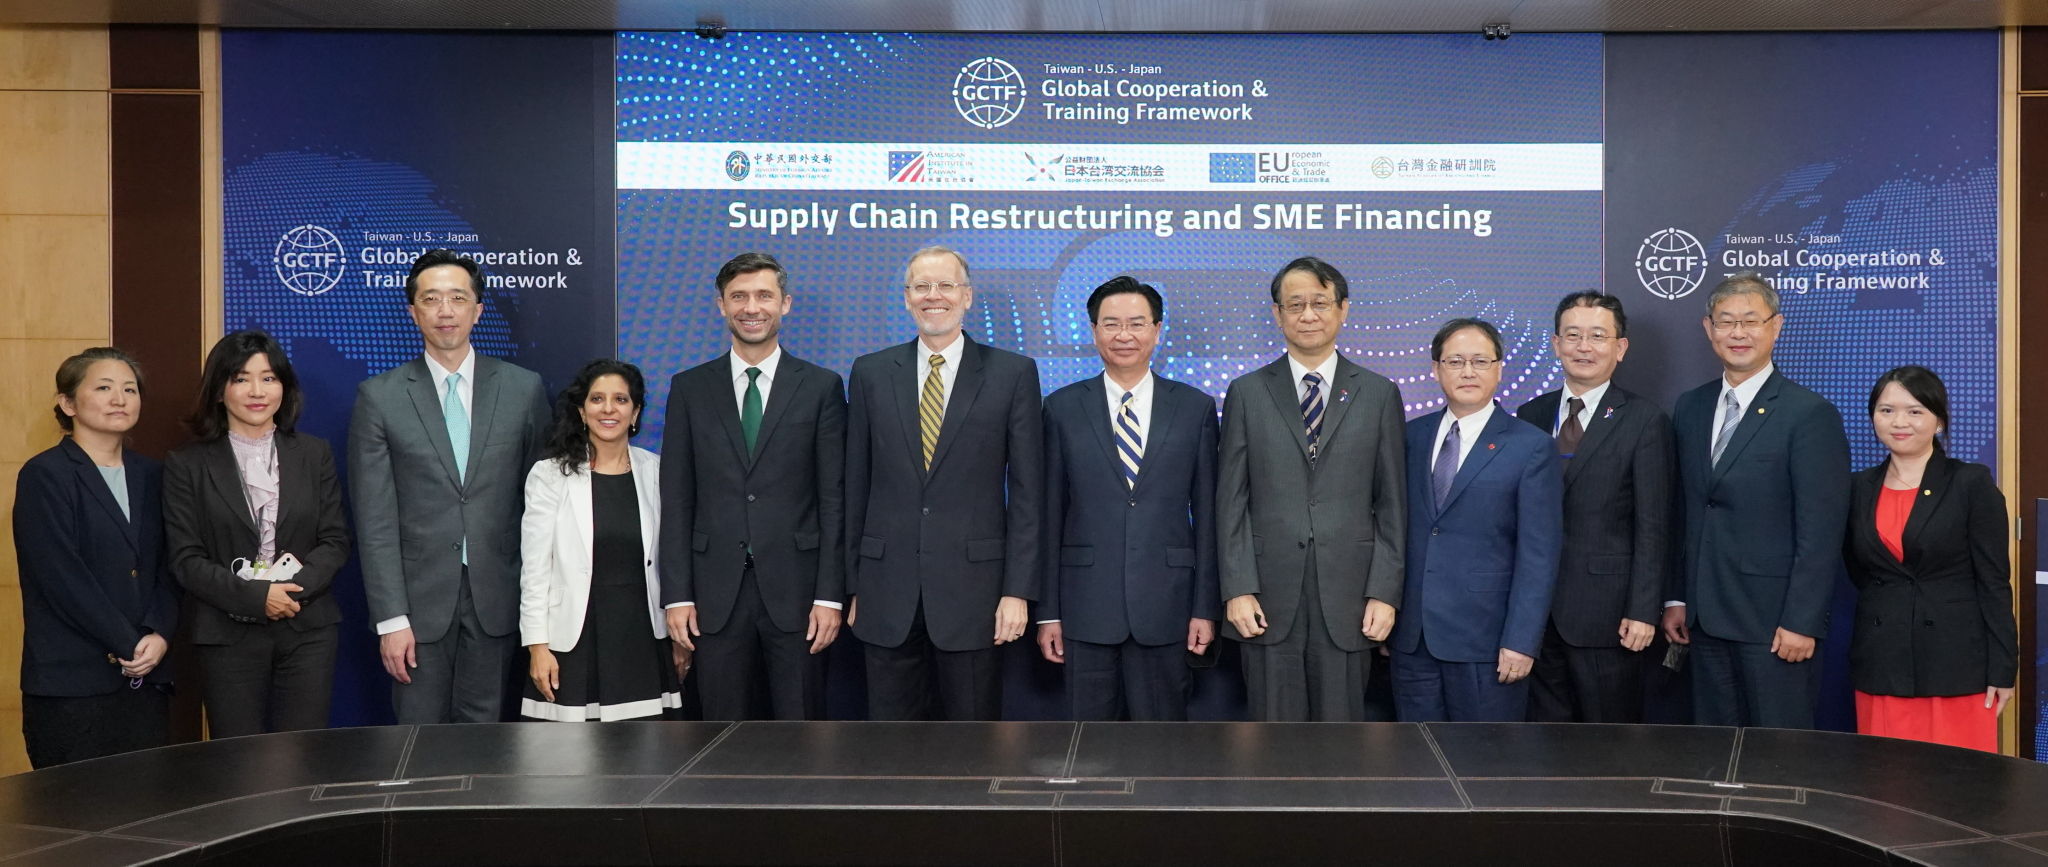 Global Cooperation and Training Framework (GCTF) on Supply Chain Restructuring and SME Financing  Session 1: Global Supply Chain Restructuring In The Indo Pacific